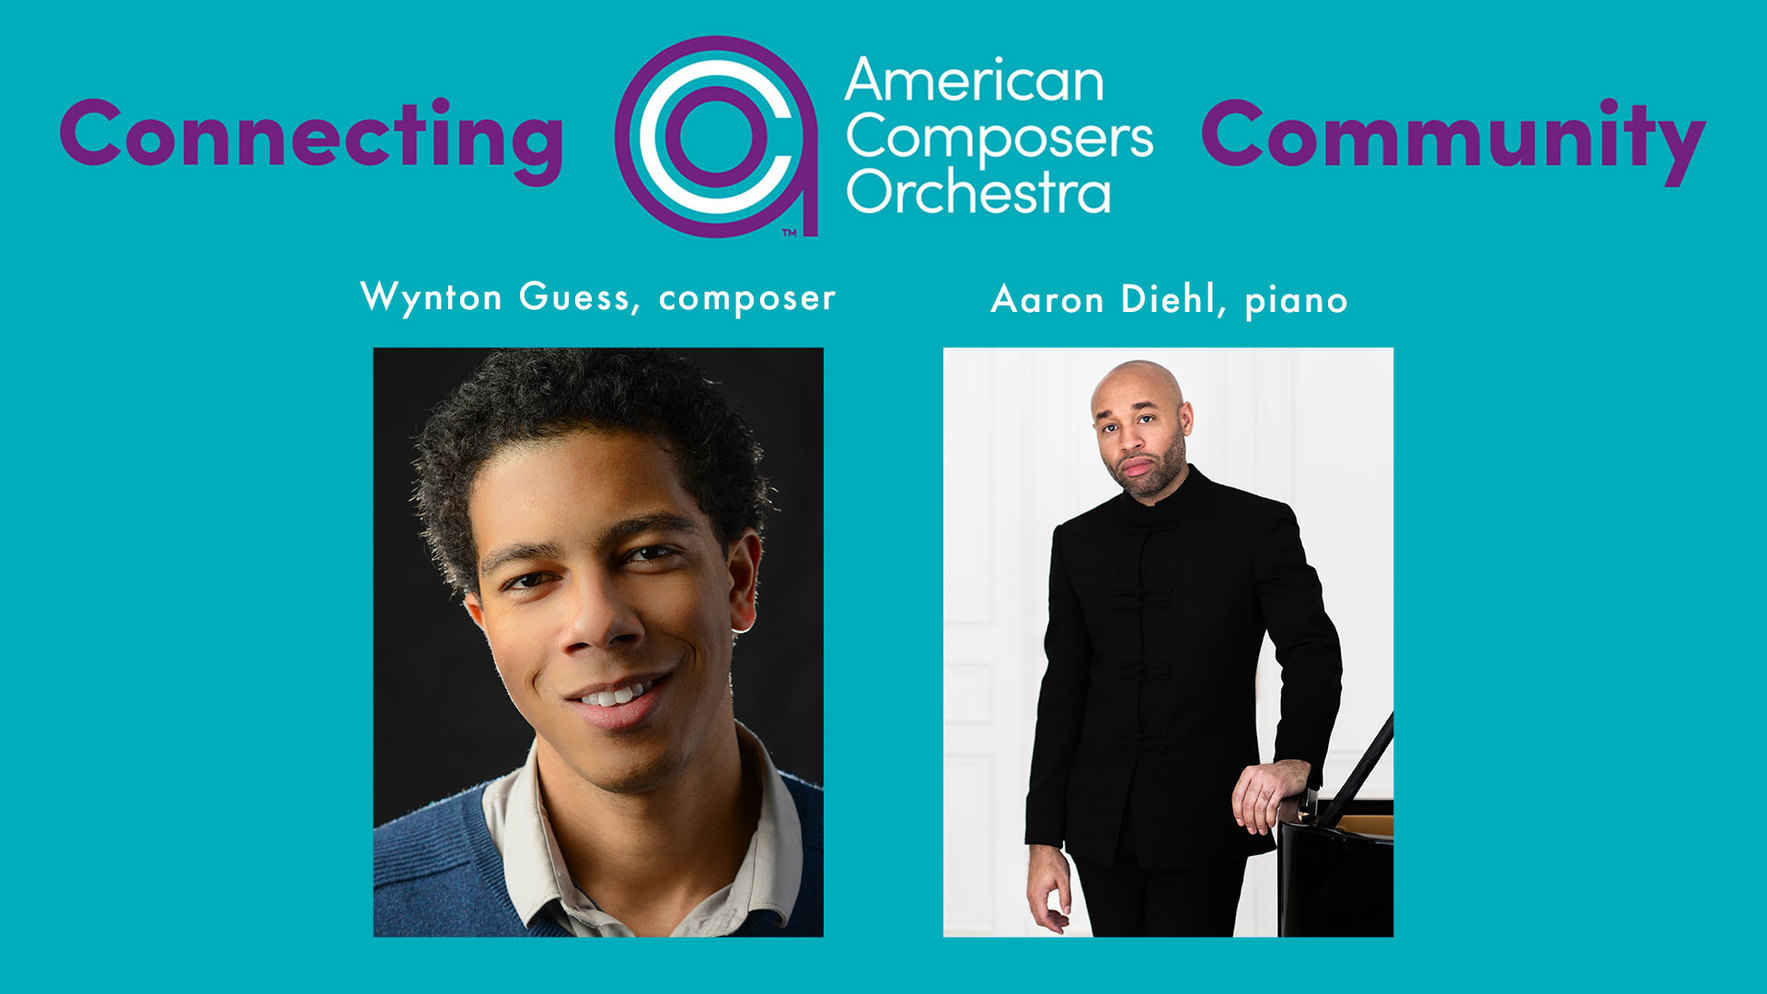 Connecting ACO Community Volume III - Wynton Guess's new work for pianist, Aaron Diehl image